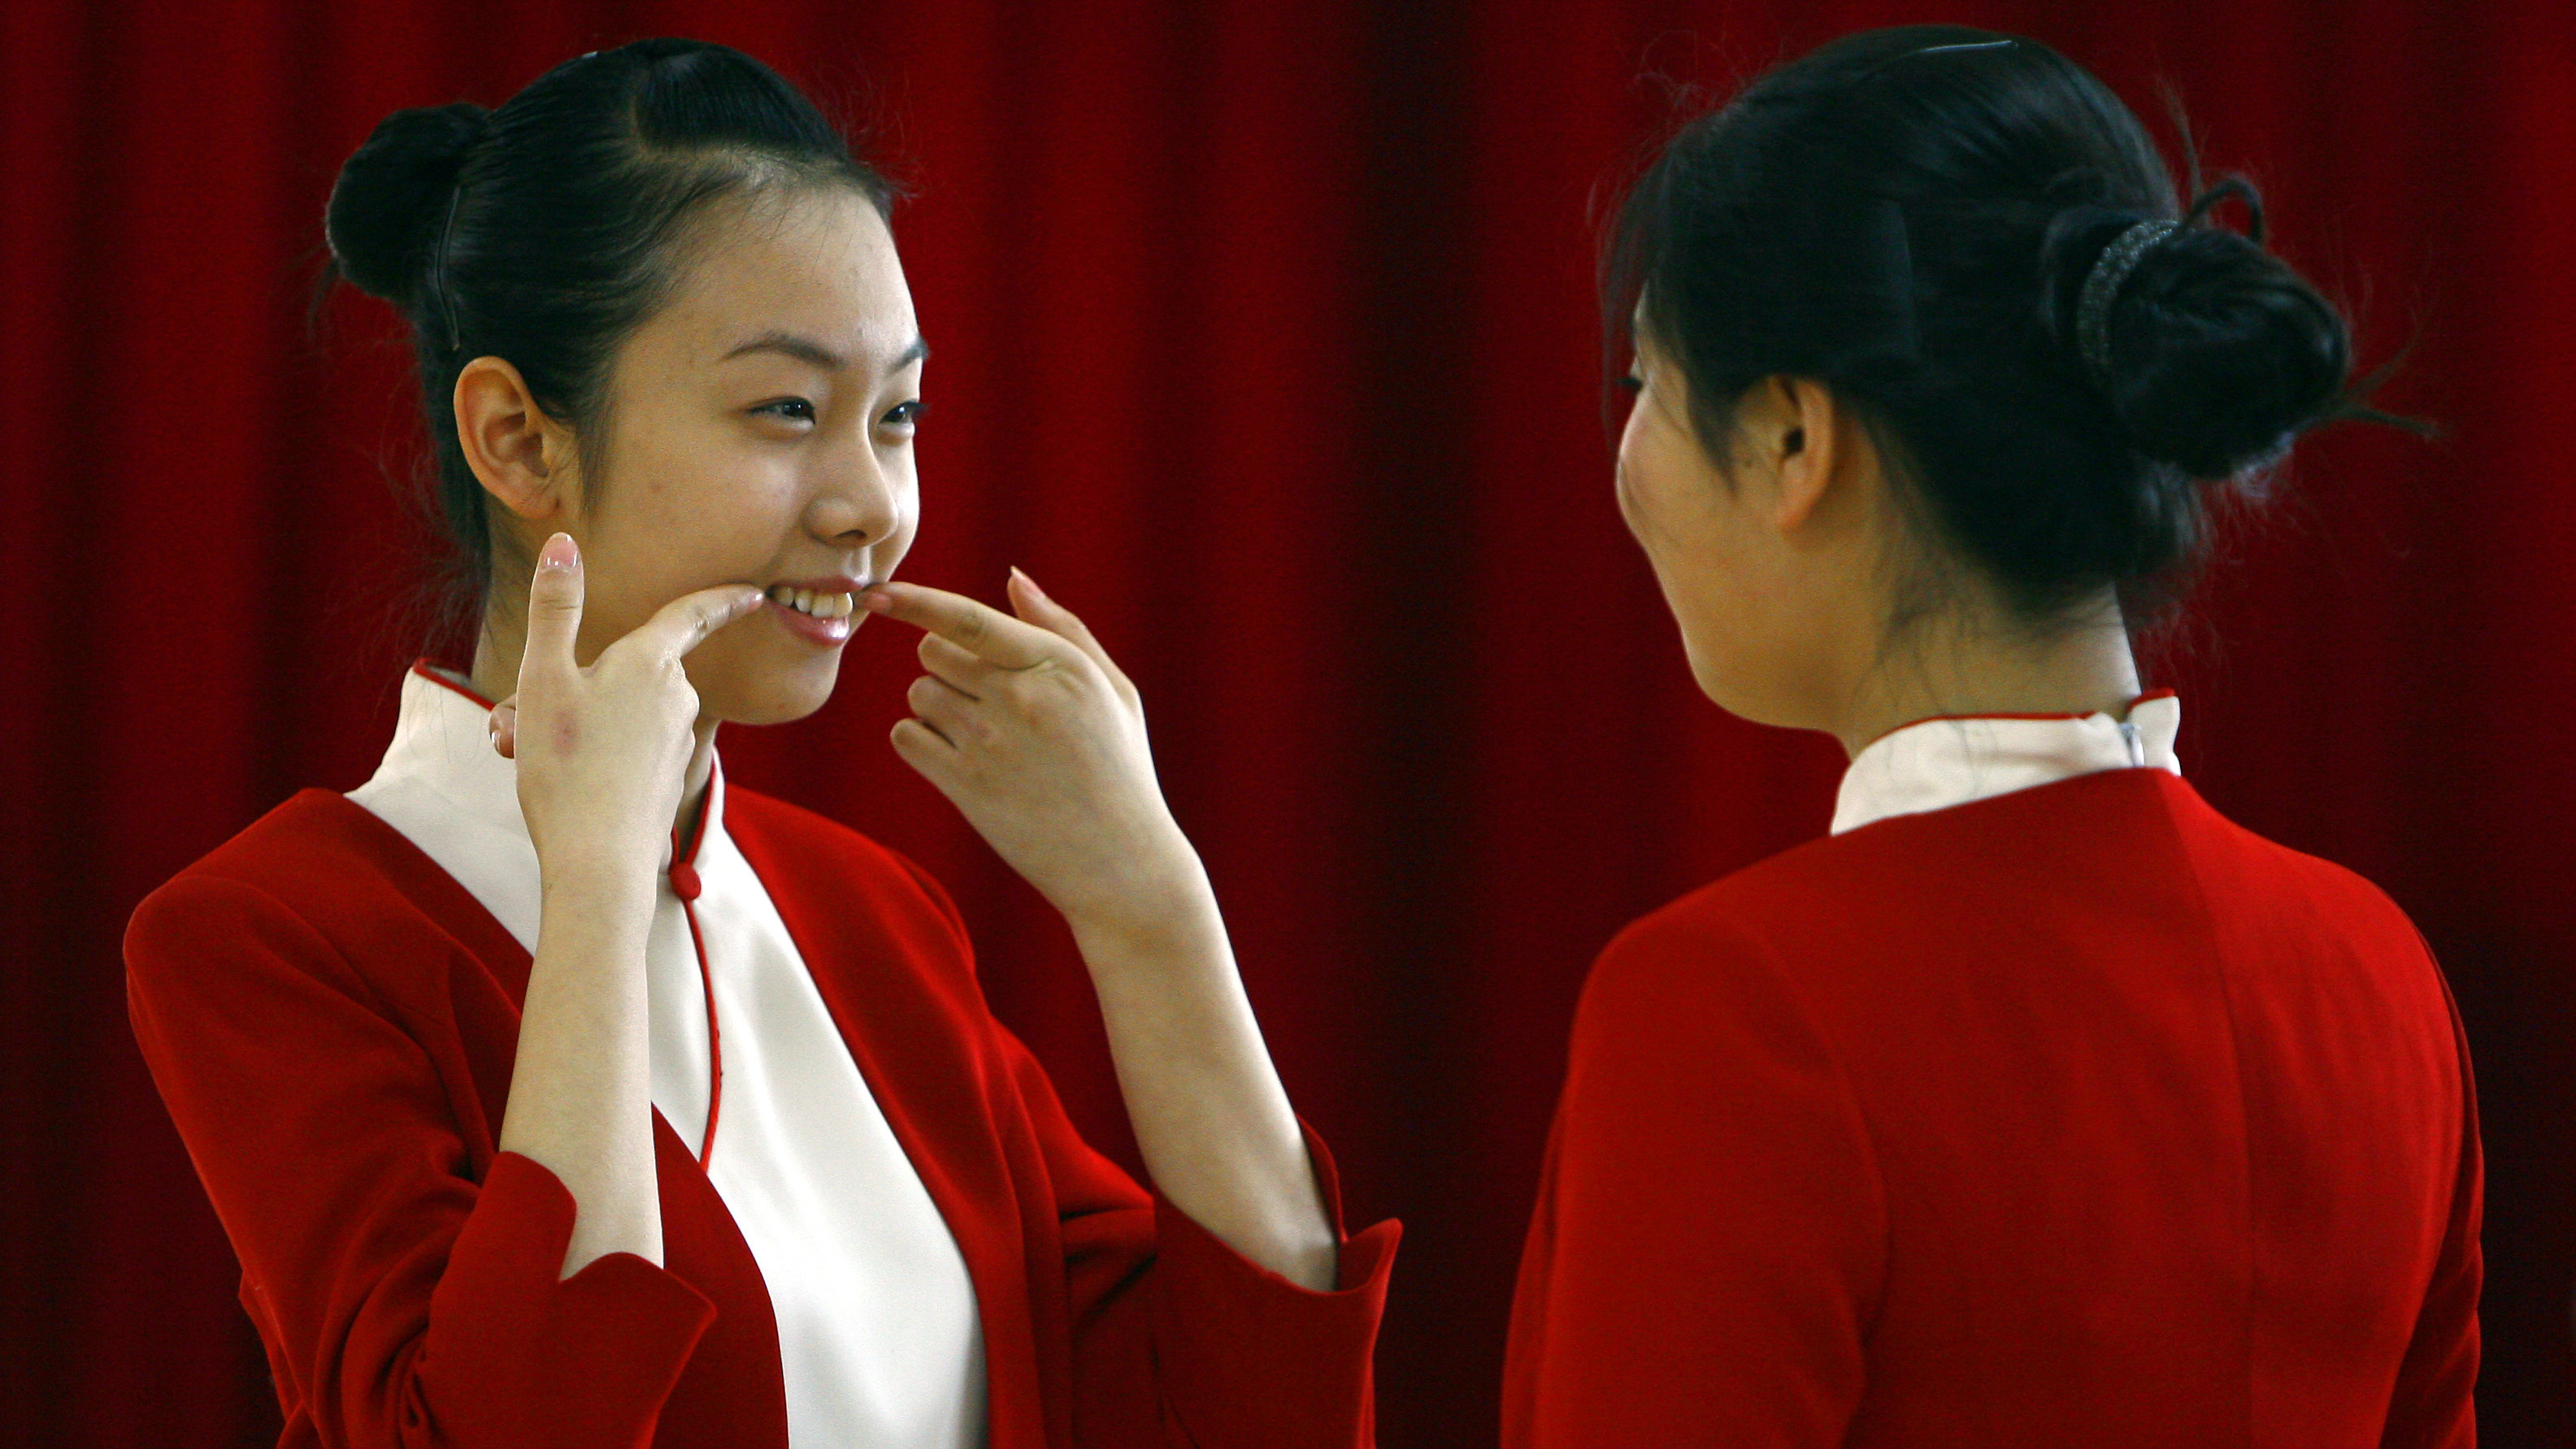 A student shows another how to smile during an etiquette training class at a vocational school in Beijing January 7, 2008.